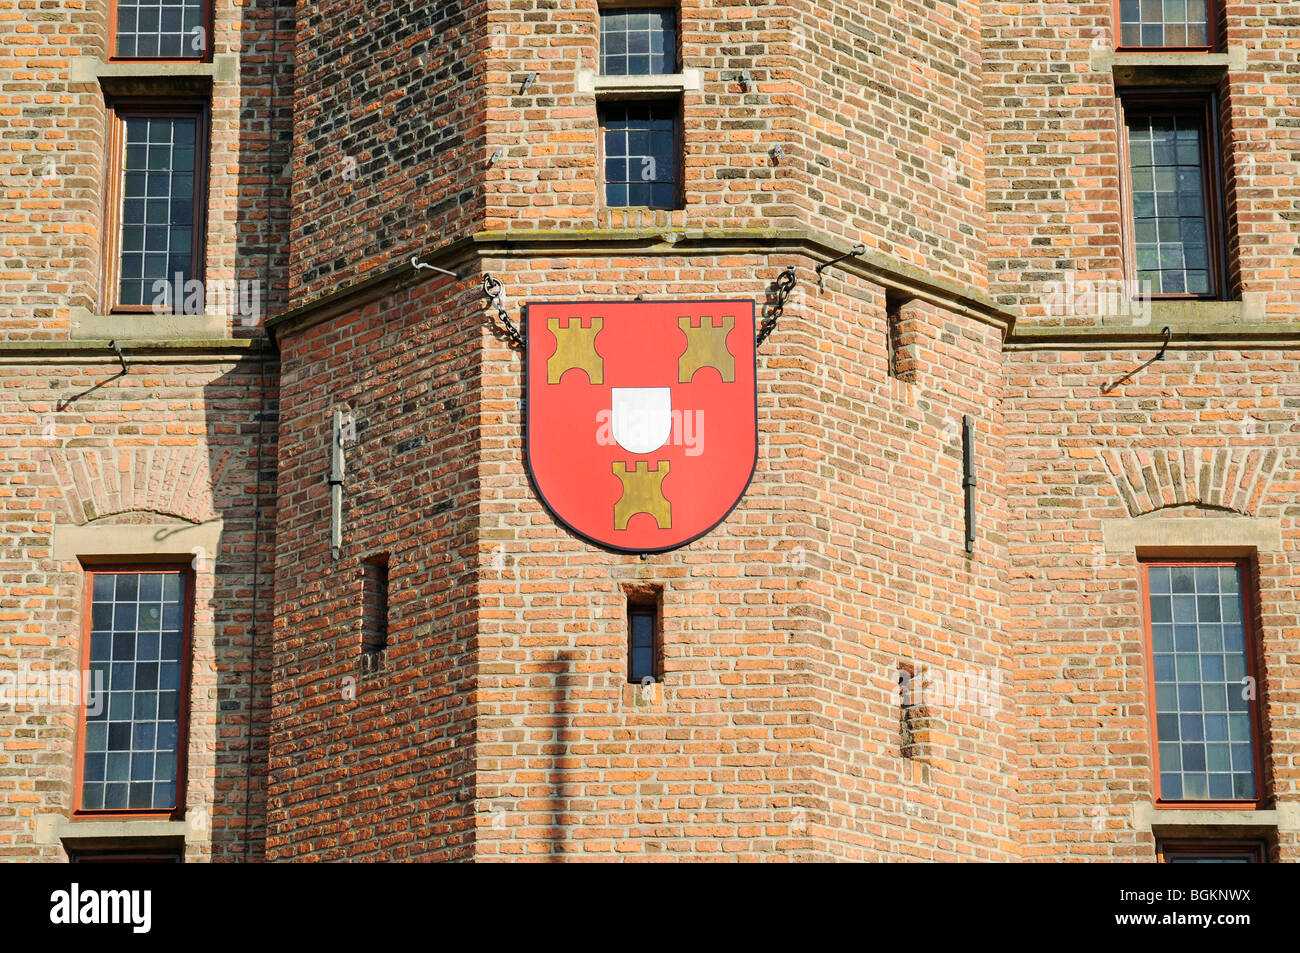 City coat of arms, heraldry, Gothic town hall, brick building, historic building, Kalkar, Lower Rhine, North Rhine - Stock Image